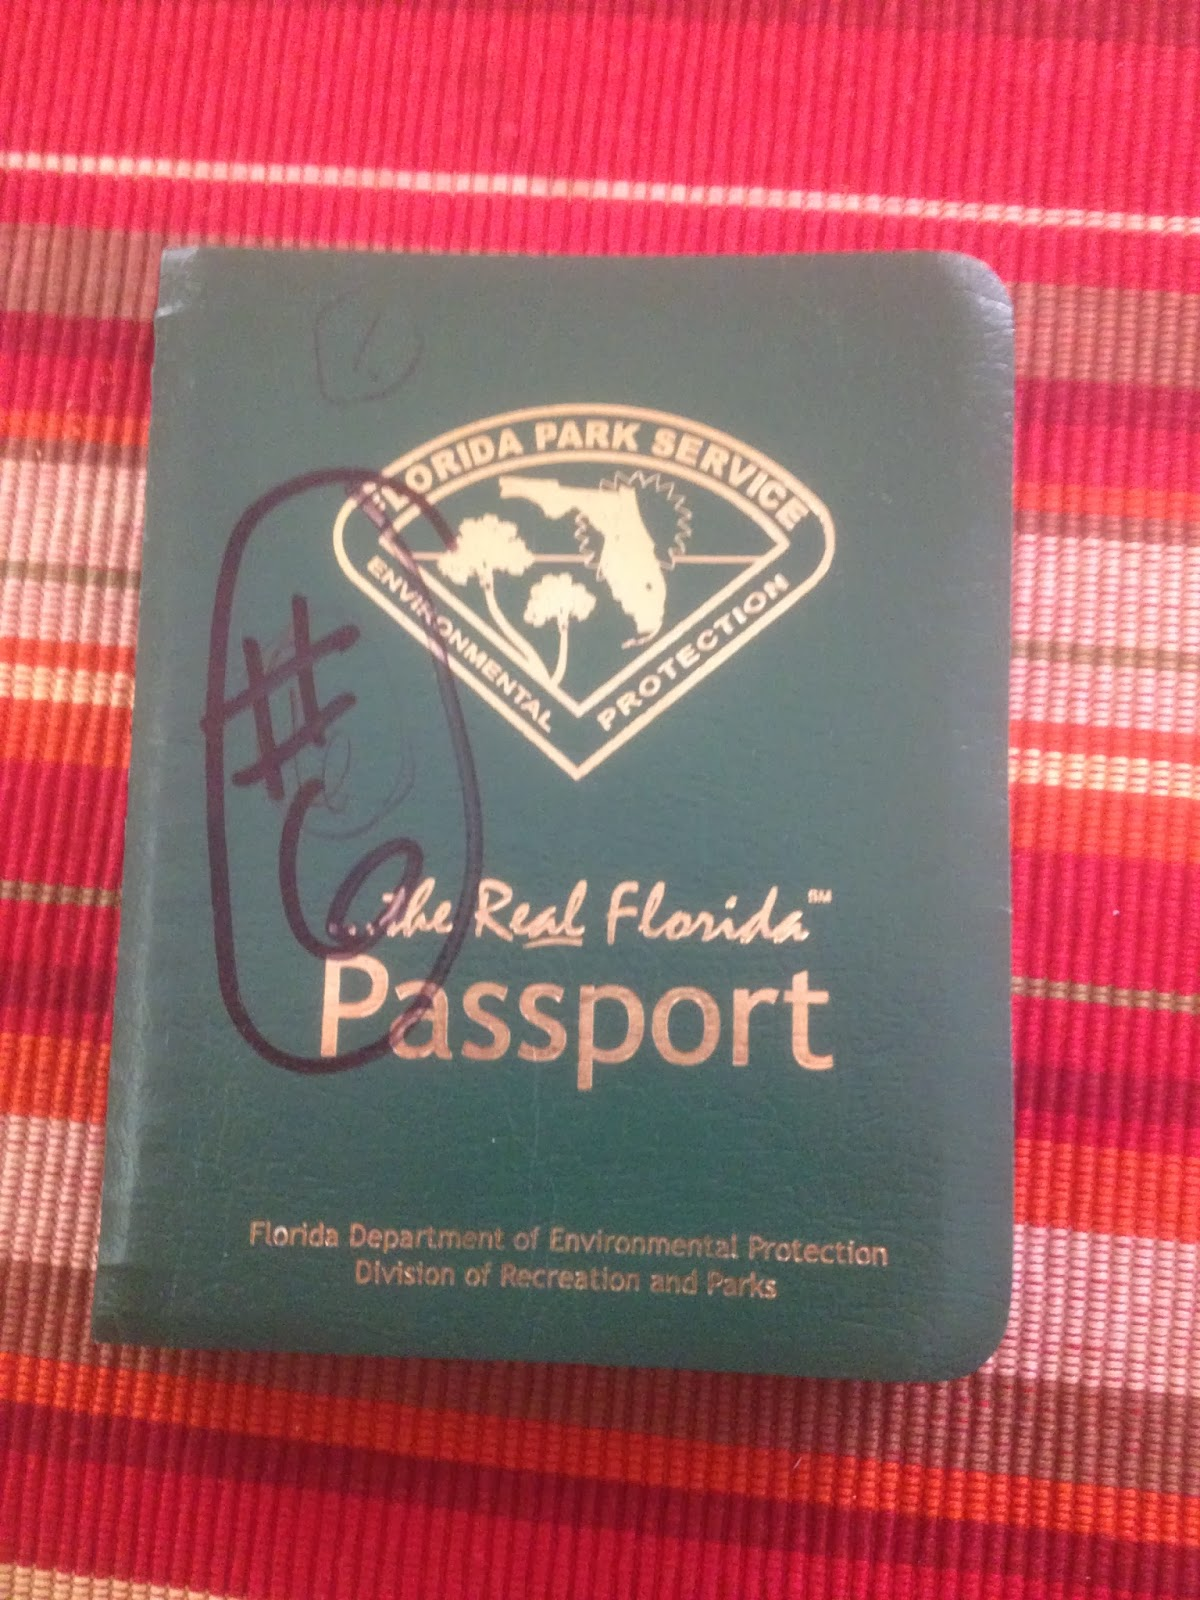 How To Obtain A Passport In Paducah, Kentucky Ending The Florida State Park  Passport Stamp